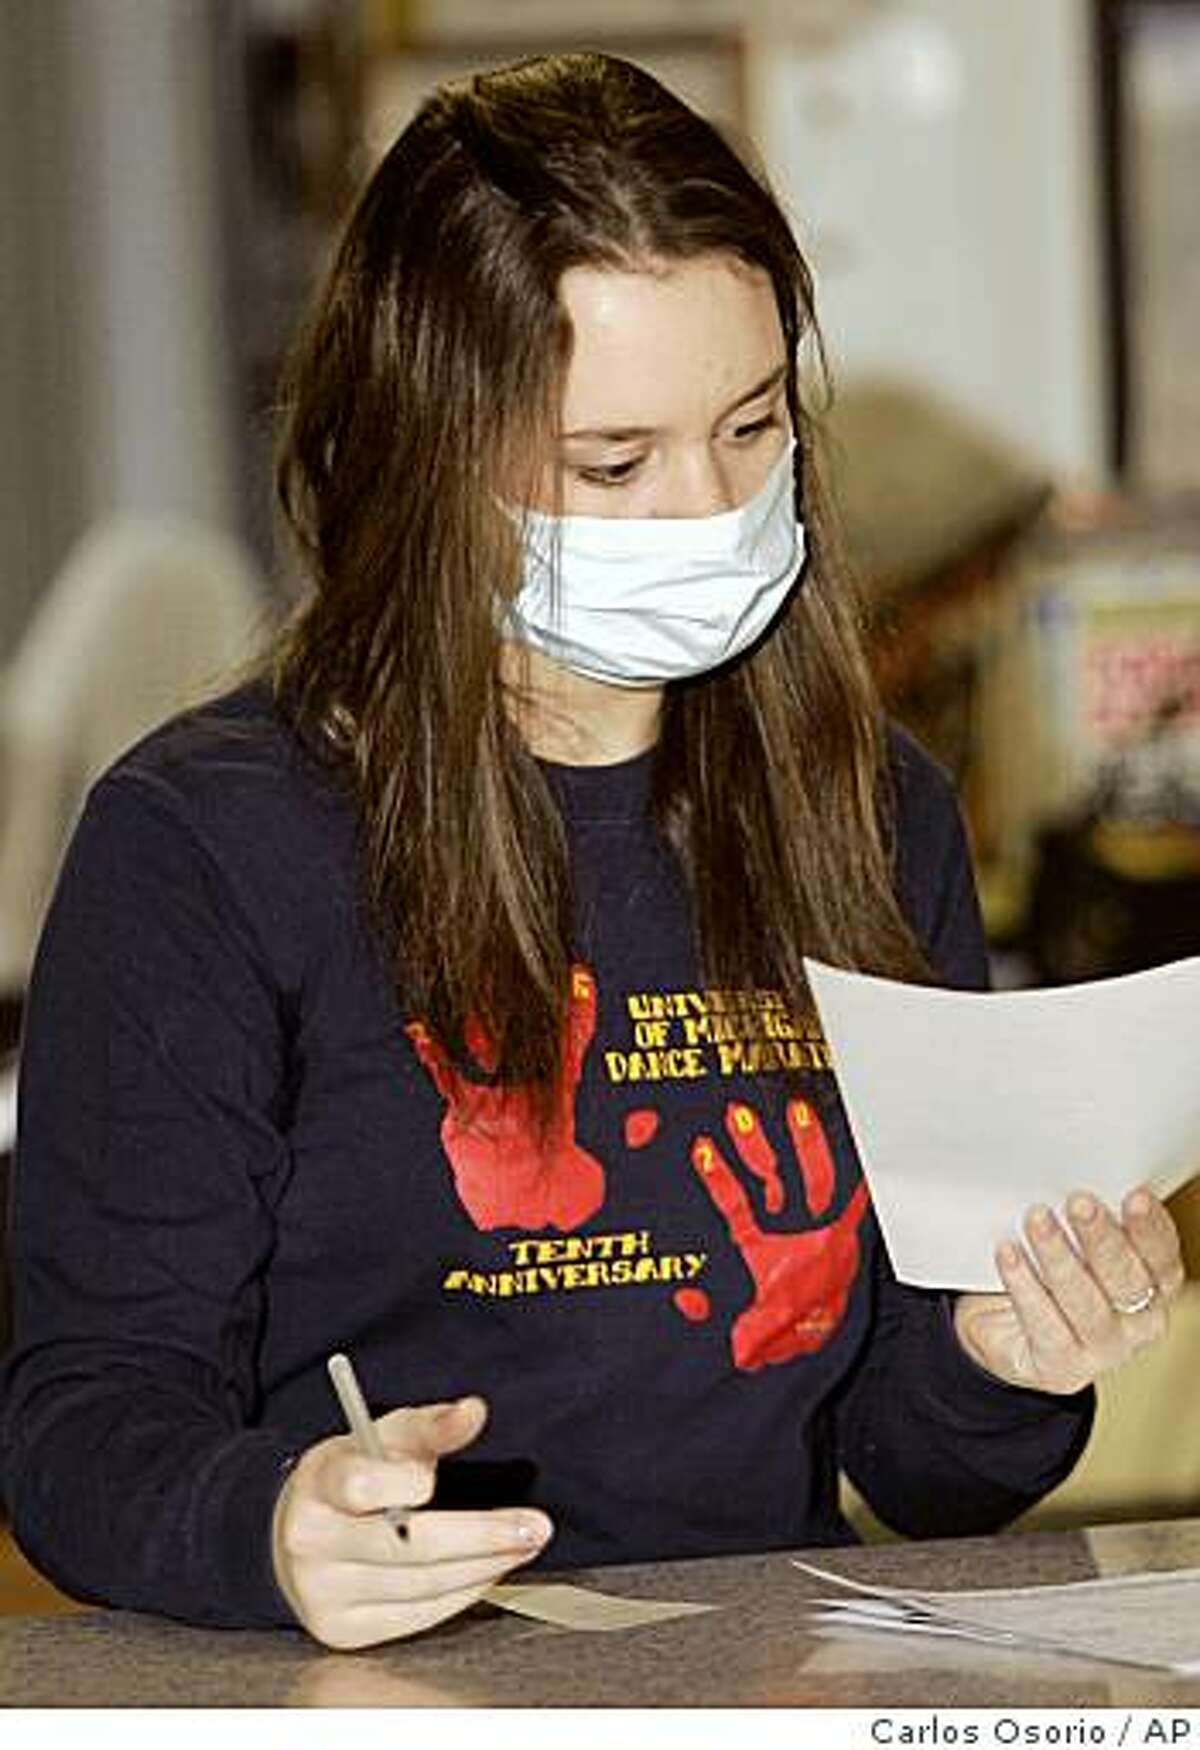 ** FILE **In this Jan 31, 2008, file photo, University of Michigan freshman Alicja Sobilo wears a surgical mask at work as part of a study as to whether the use of masks affects the spread of flu or other respiratory illnesses in Ann Arbor, Mich.. Doctors have long advised frequent hand-washing to avoid spreading germs. Wearing surgical masks and using hand sanitizers also can help, a novel University of Michigan study found. (AP Photo/Carlos Osorio, File)